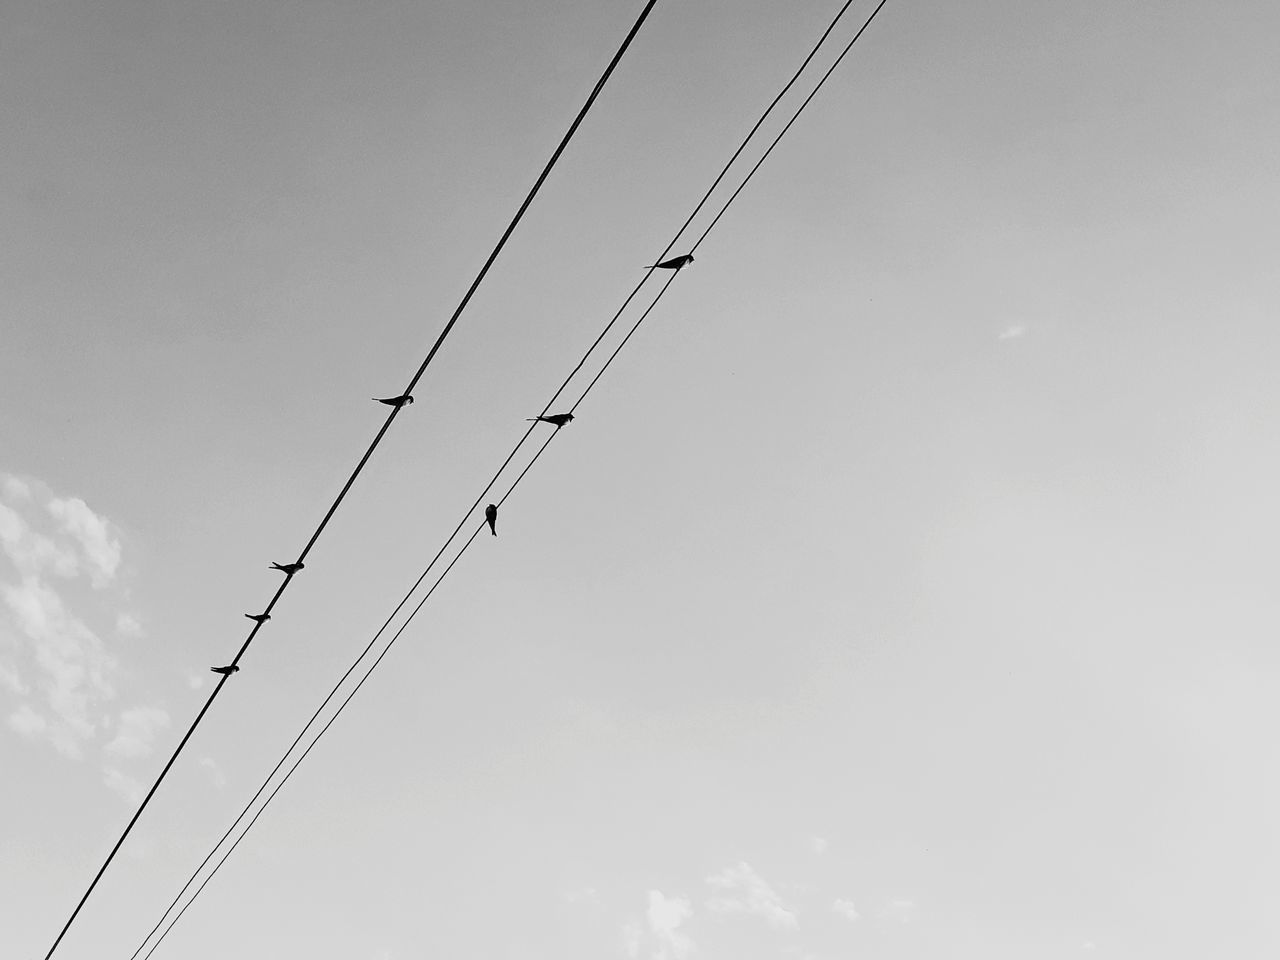 sky, low angle view, cable, electricity, connection, power line, no people, technology, nature, bird, day, cloud - sky, animal themes, animals in the wild, vertebrate, animal, power supply, animal wildlife, outdoors, fuel and power generation, telephone line, flock of birds